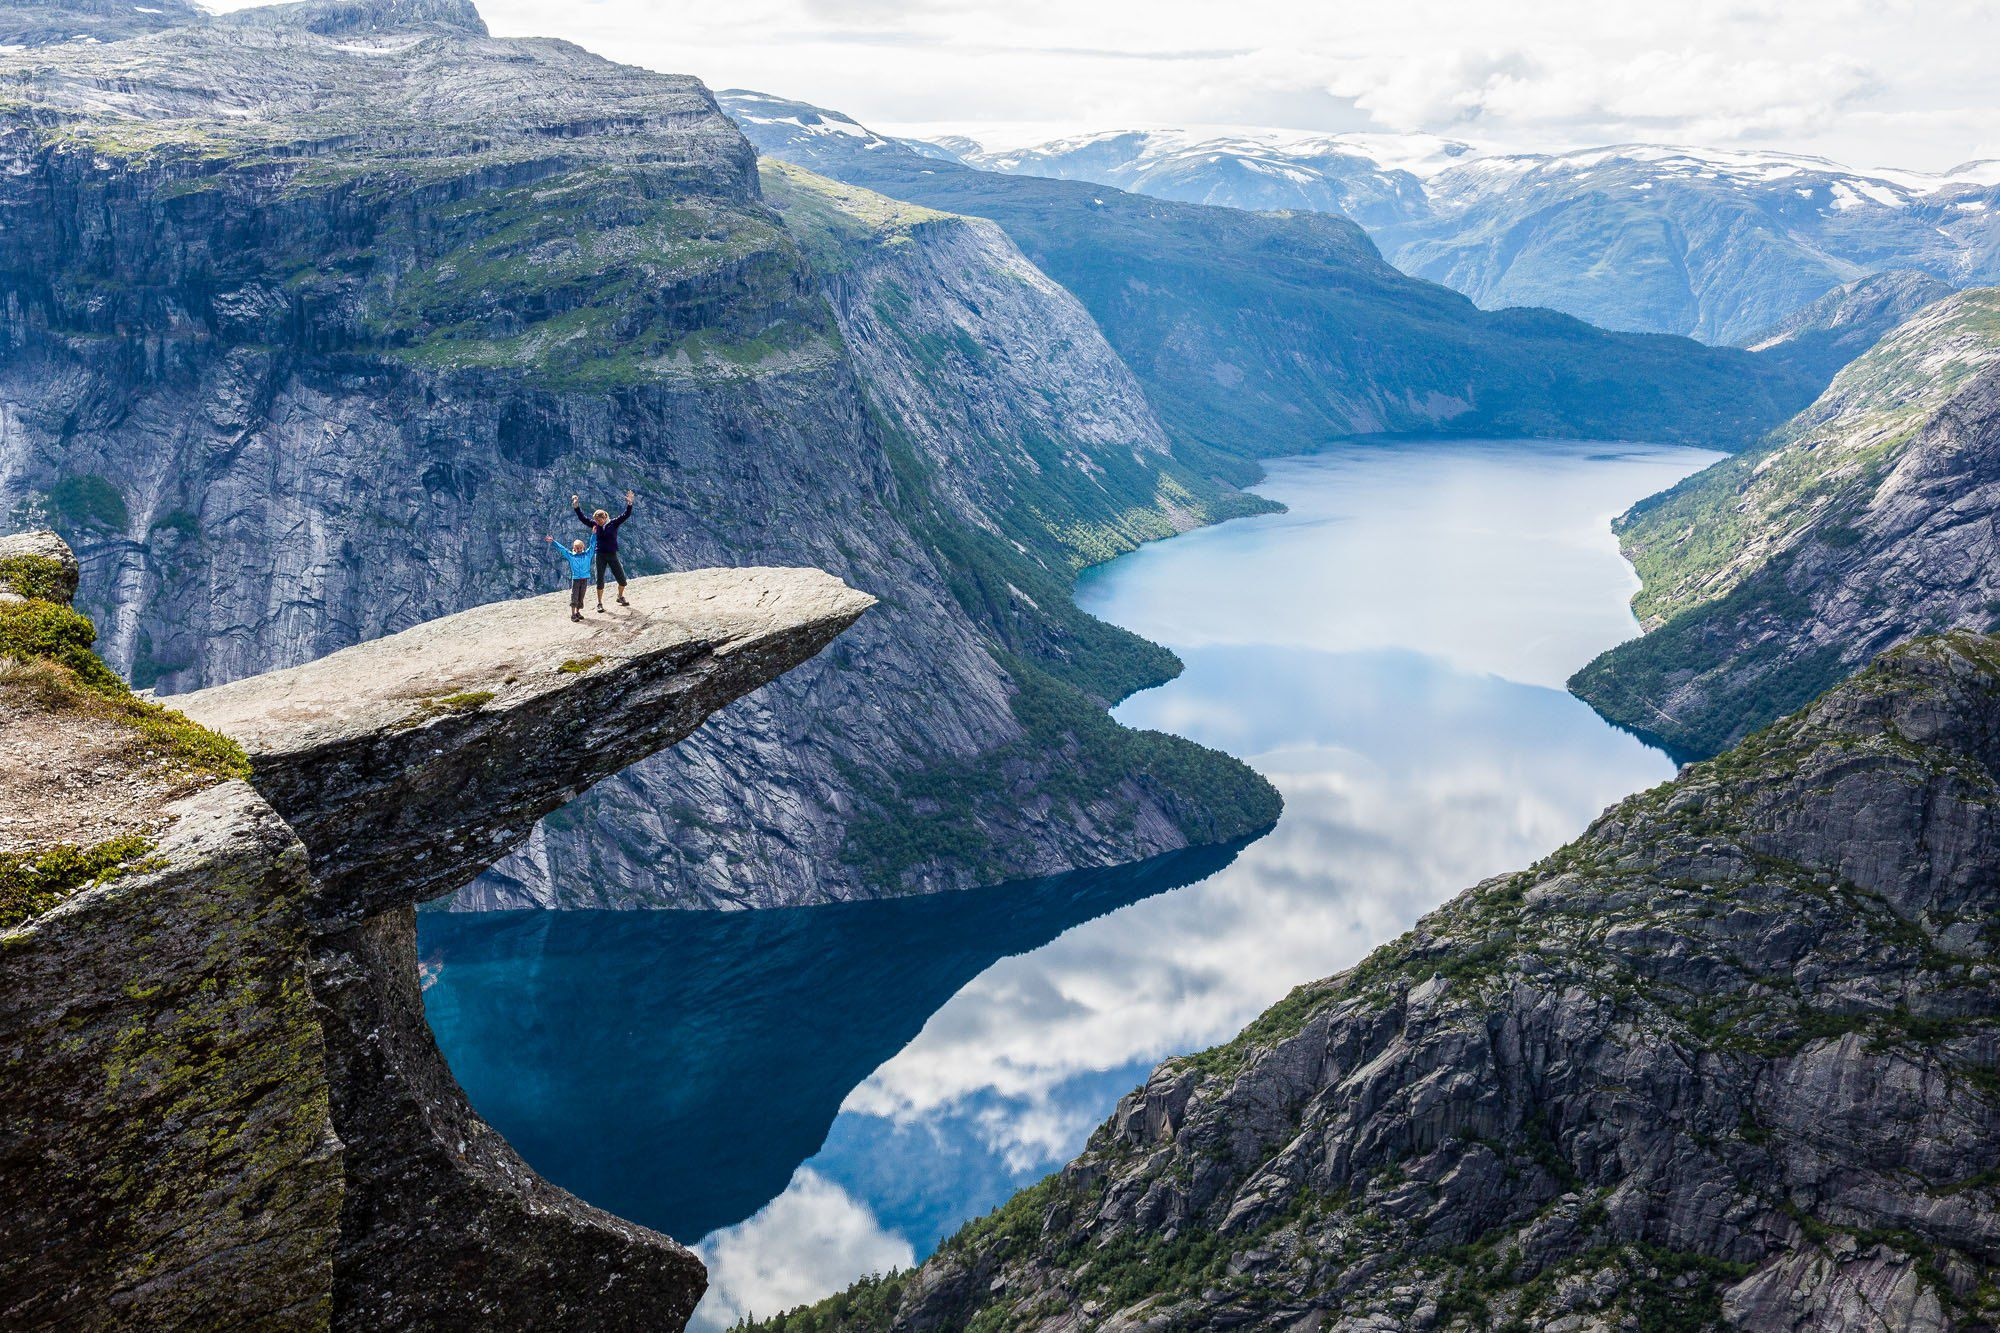 Where to Stay near Trolltunga